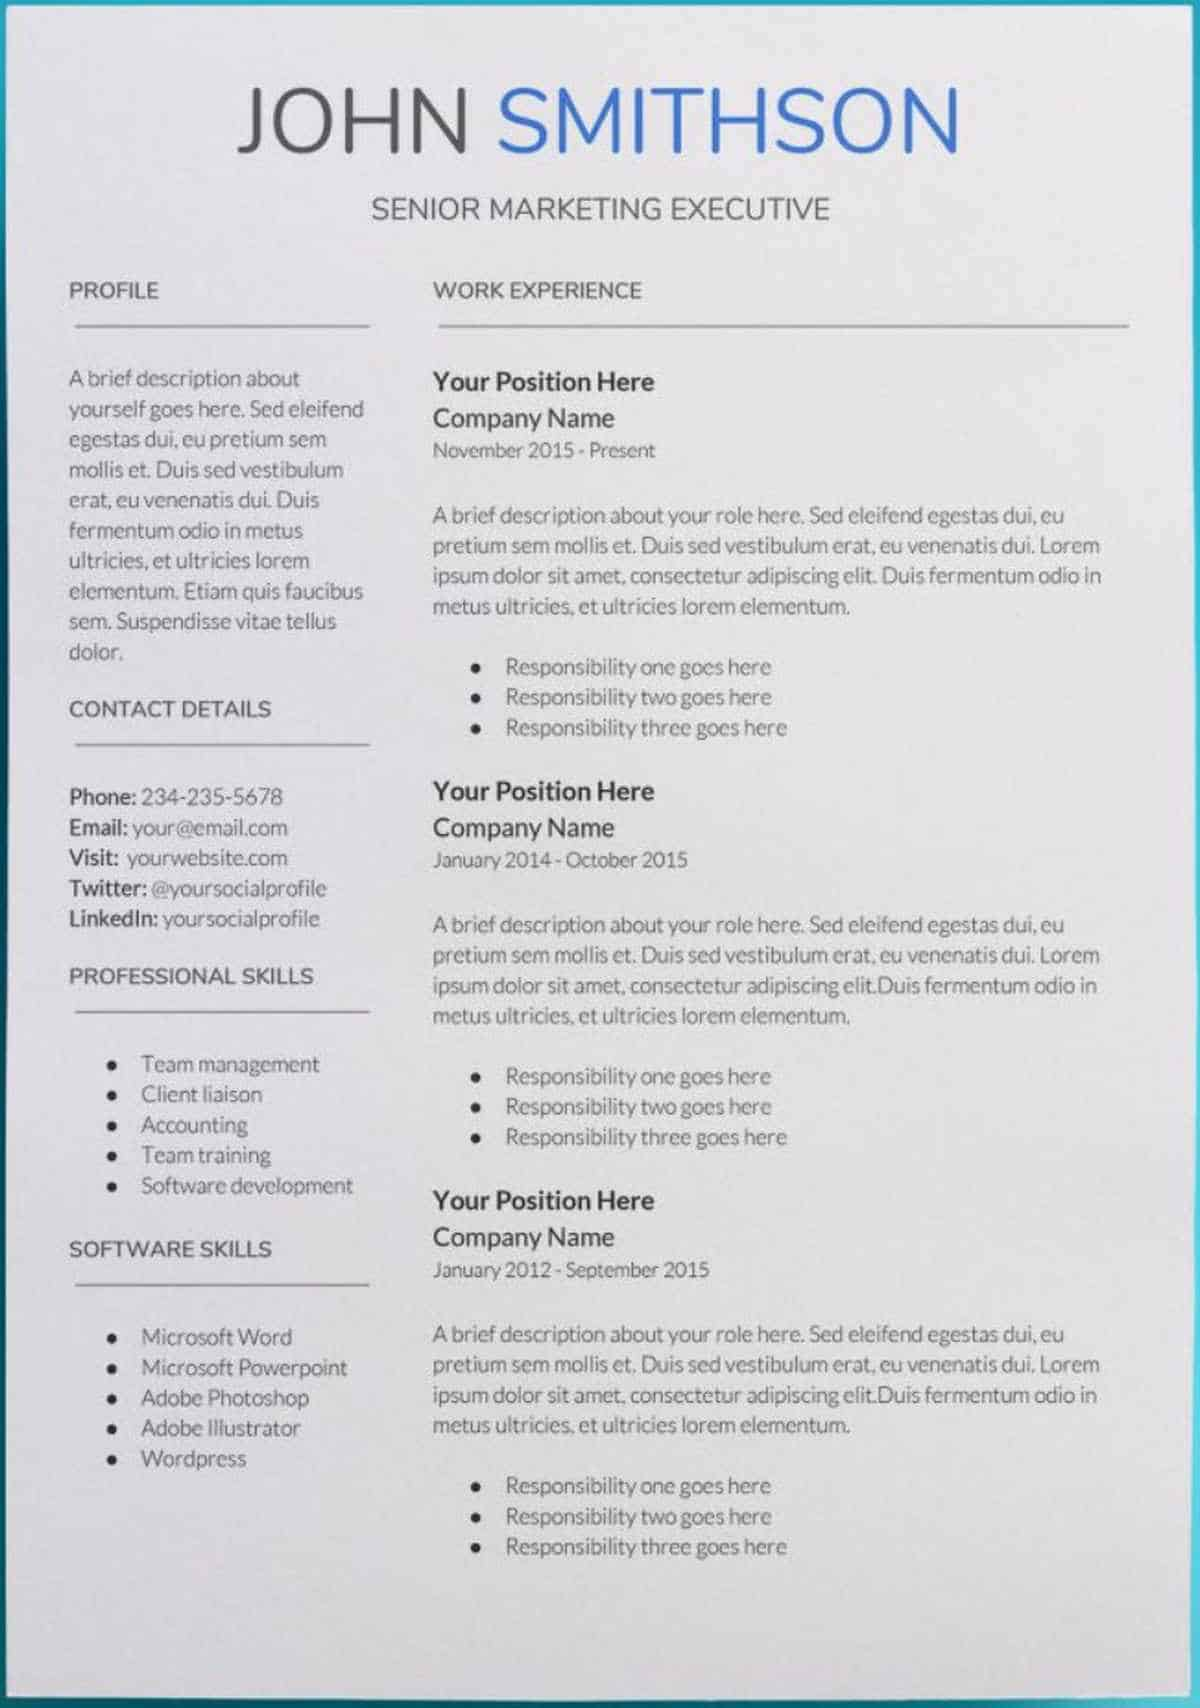 google docs resume templates downloadable pdfs beautiful template free saturn volleyball Resume Beautiful Google Doc Resume Template Free